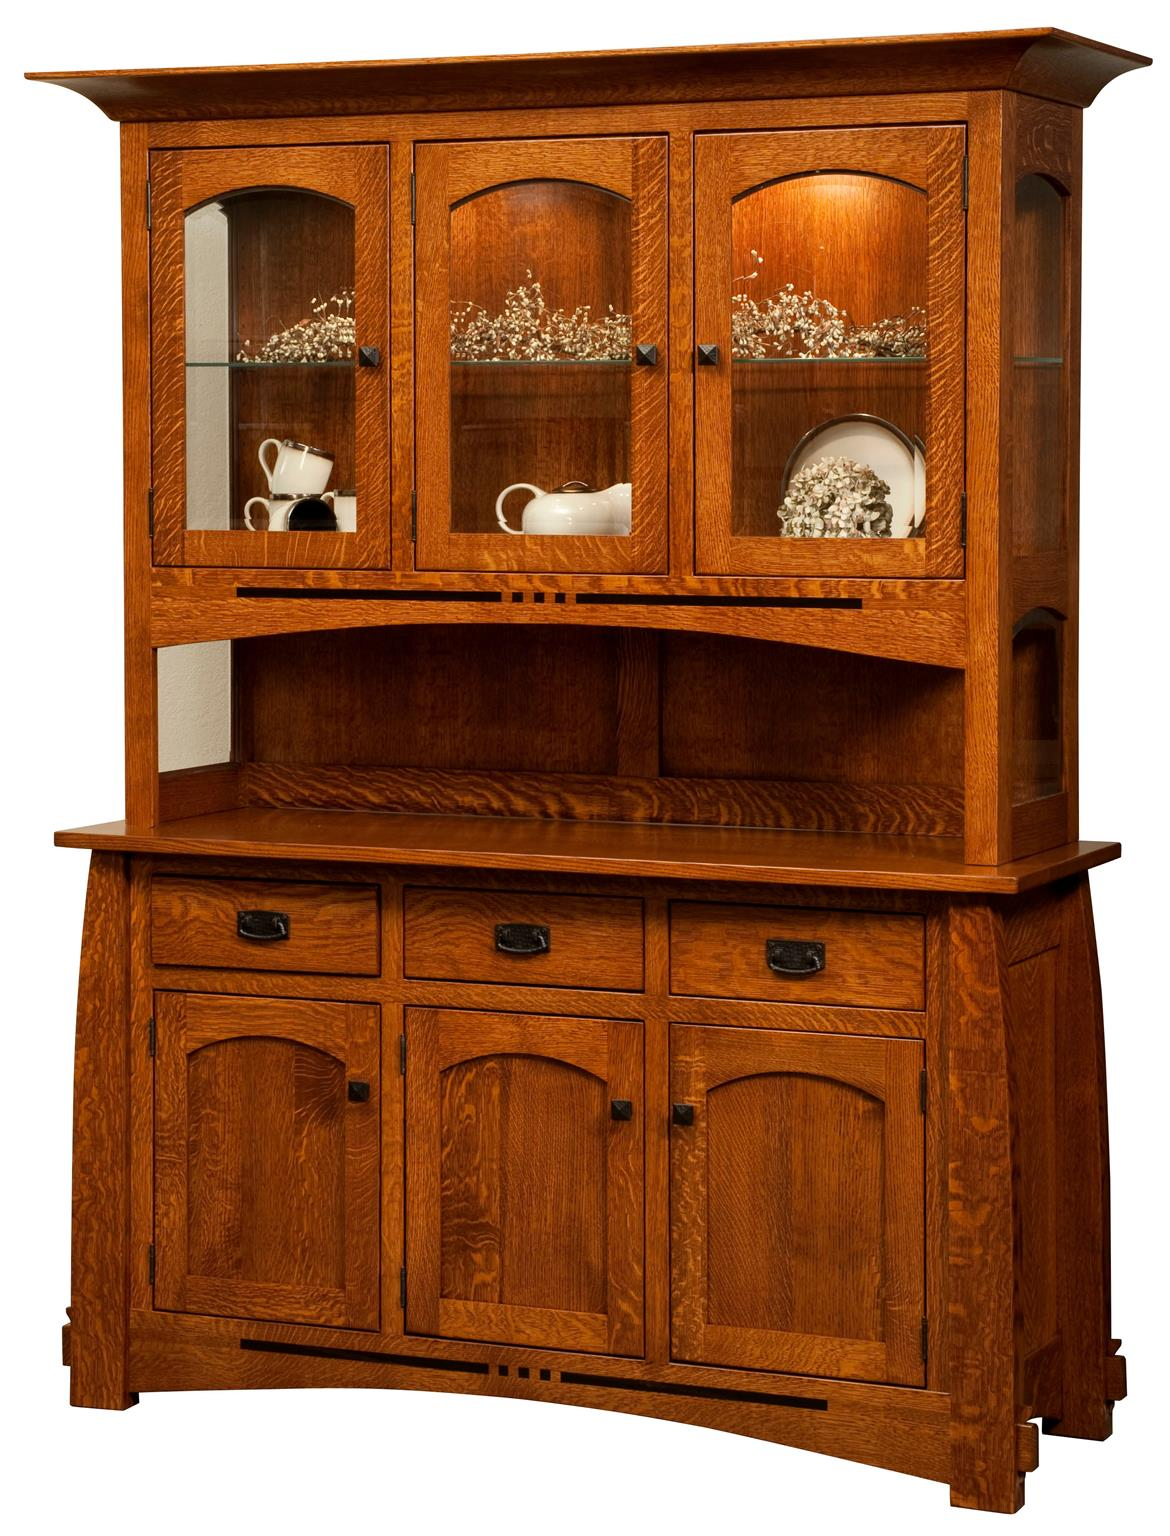 Amish Signature Hutch & Buffet Image